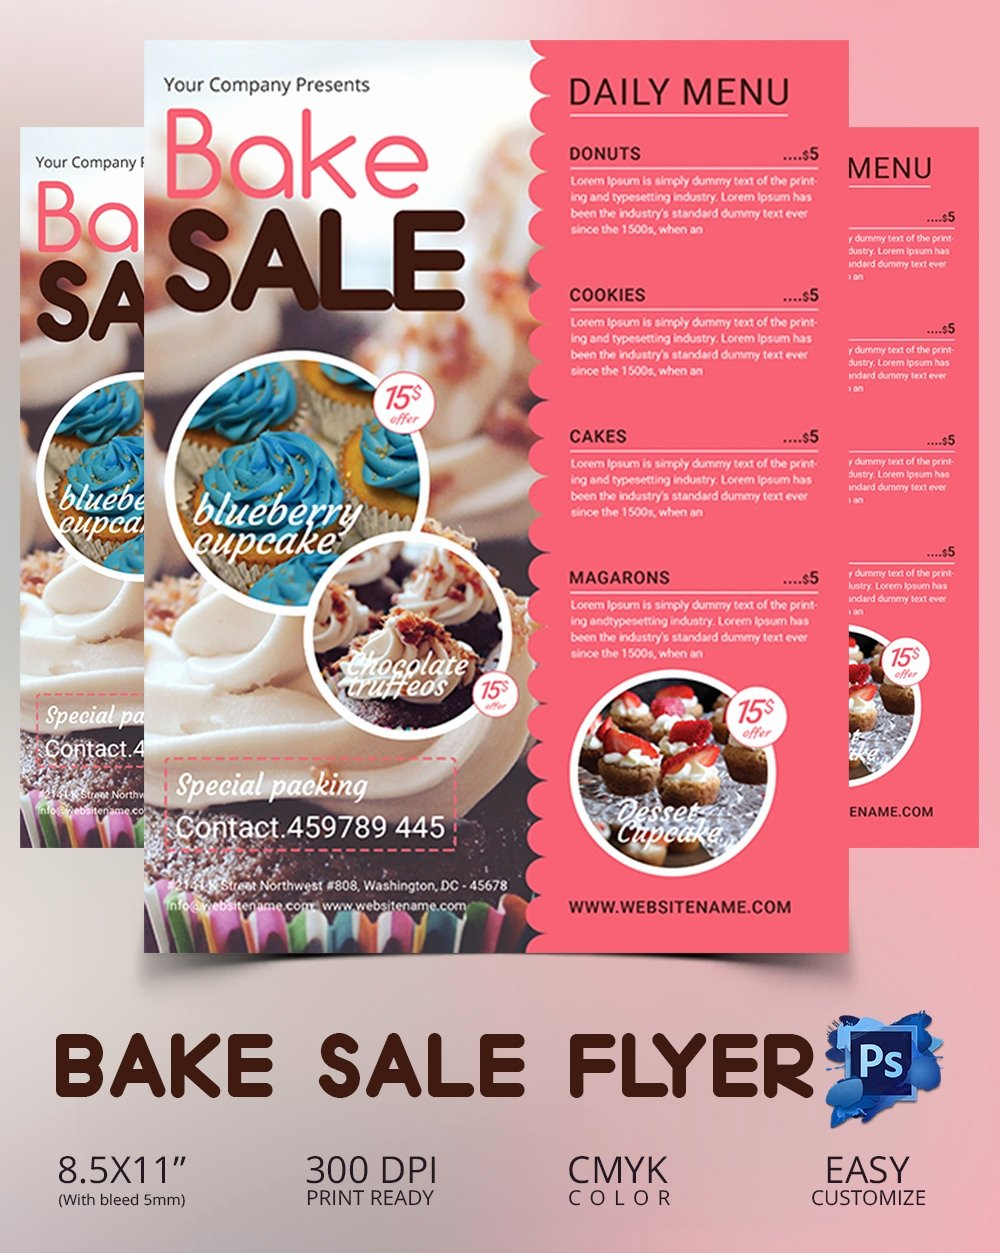 Bake Sale Flyer Template Inspirational Bake Sale Flyer Template 34 Free Psd Indesign Ai